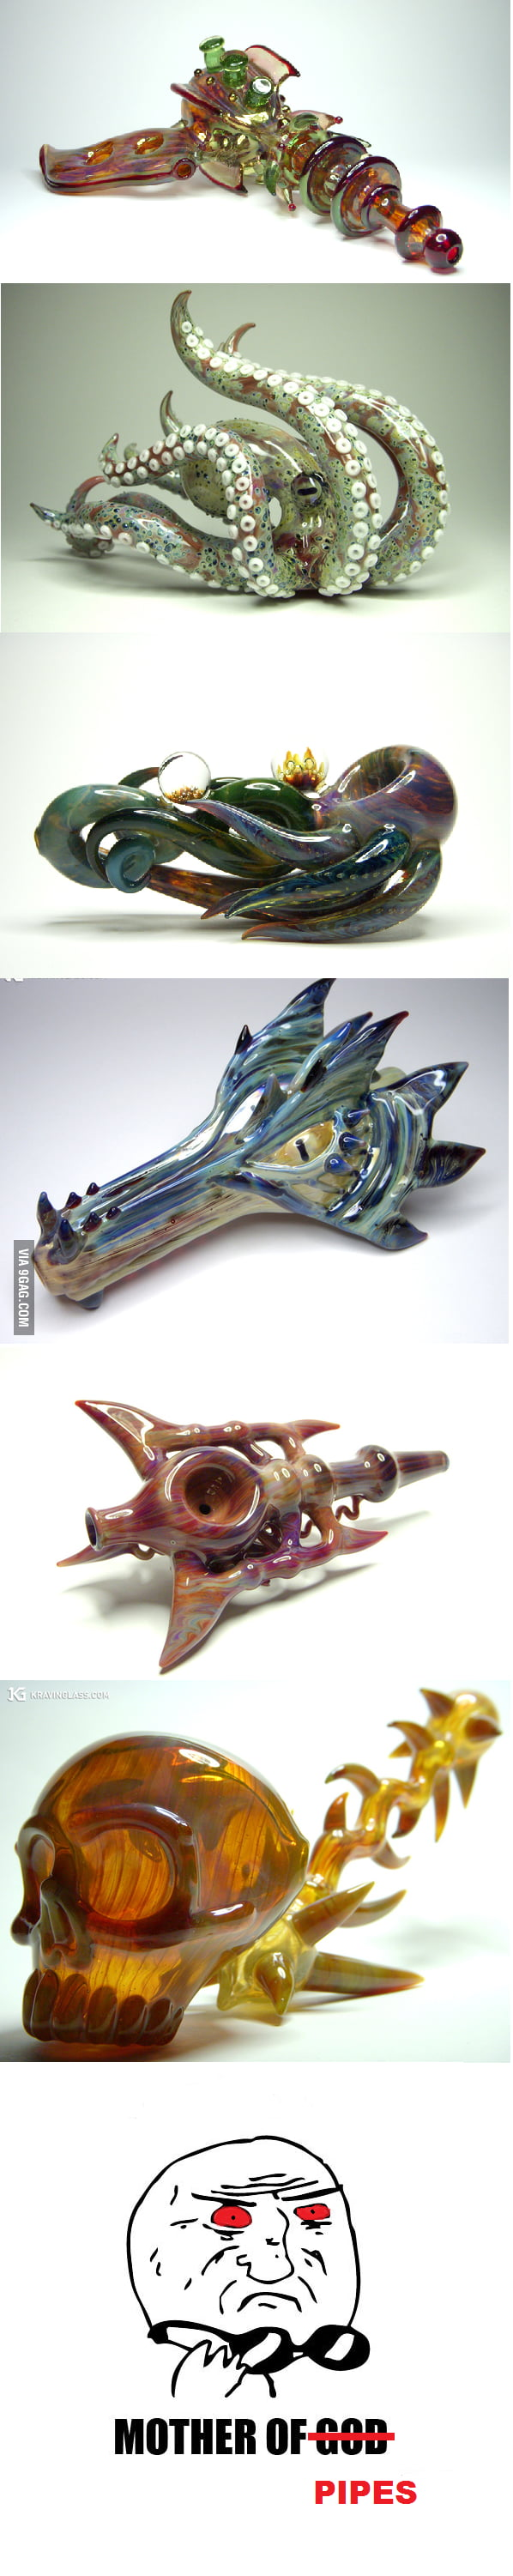 Mother of Pipes